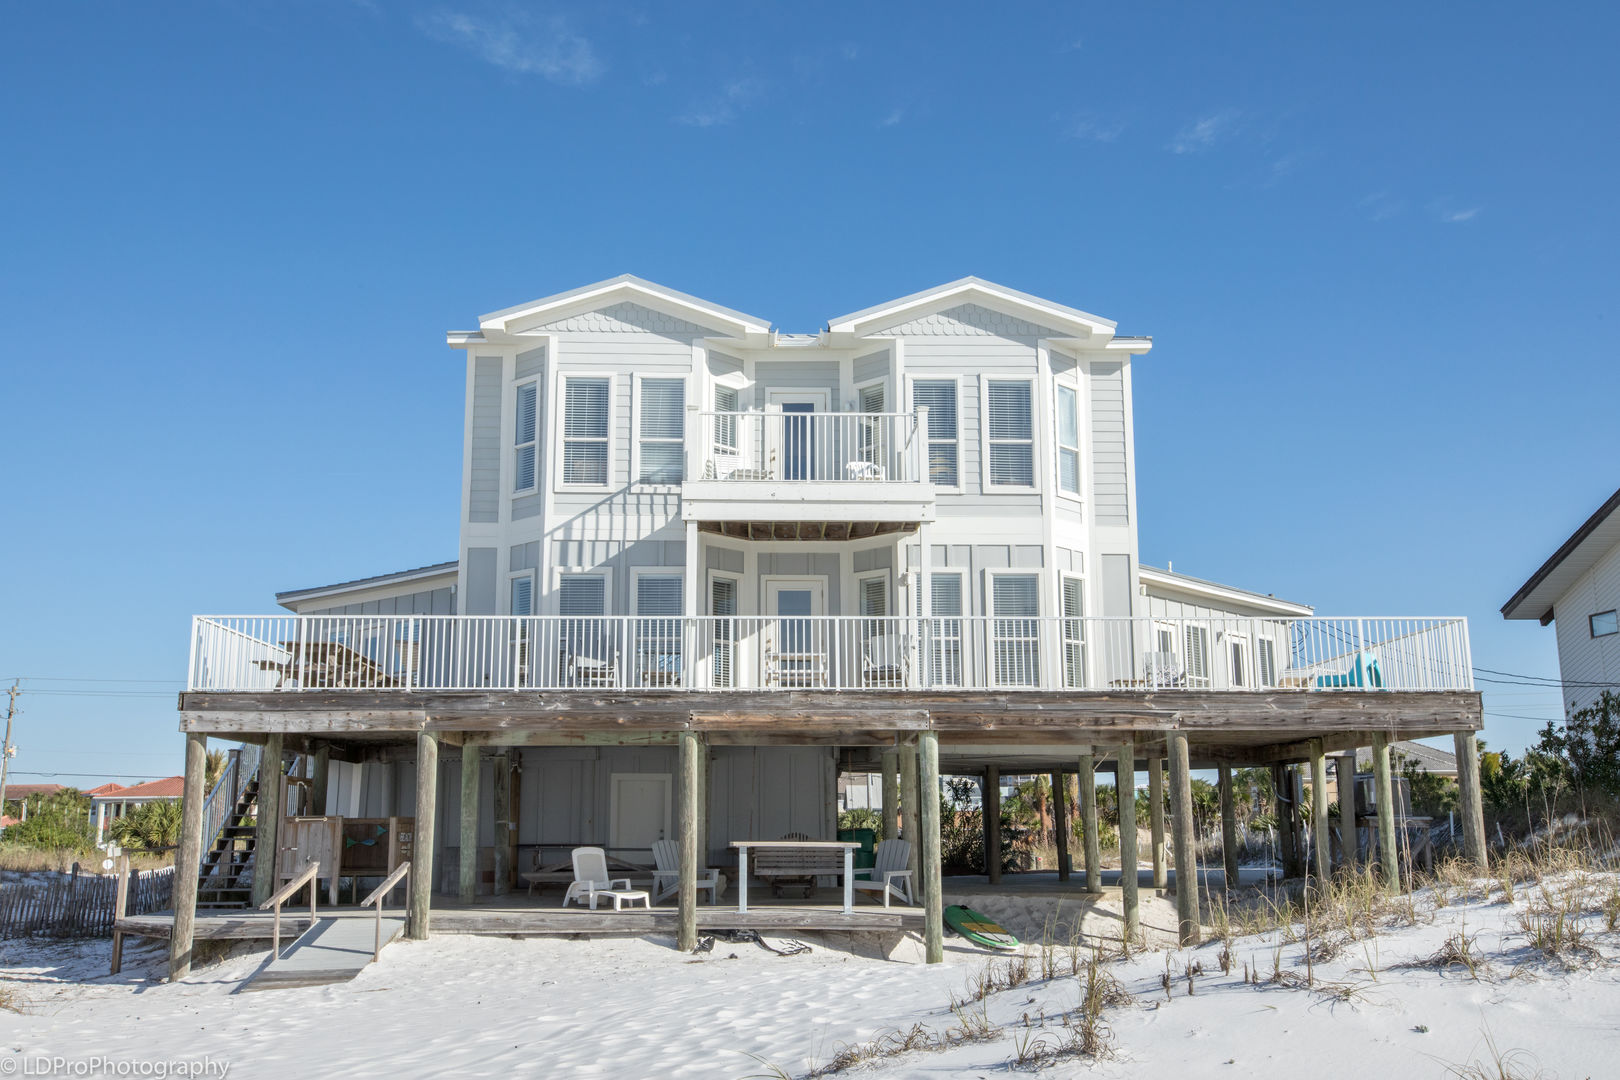 The Castle Holiday Isle Properties Inc